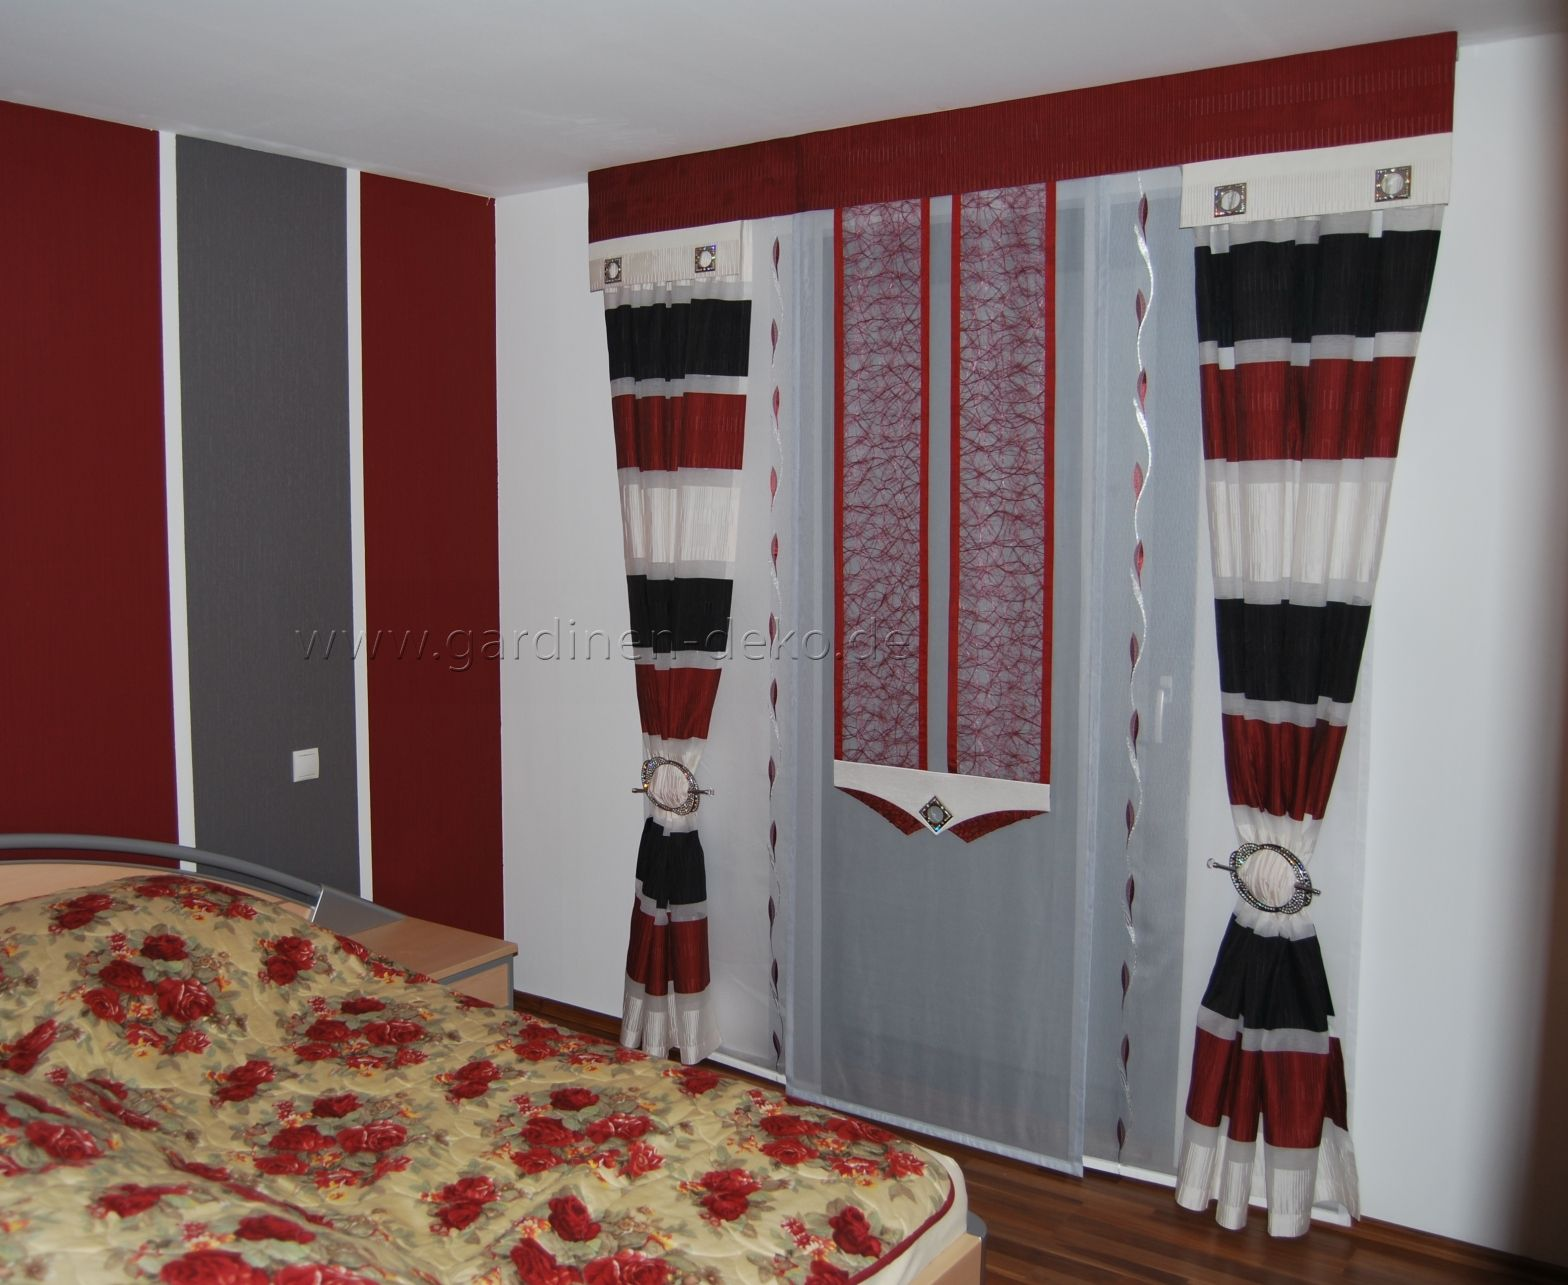 moderne schlafzimmer schiebegardine in rot wei schwarz. Black Bedroom Furniture Sets. Home Design Ideas